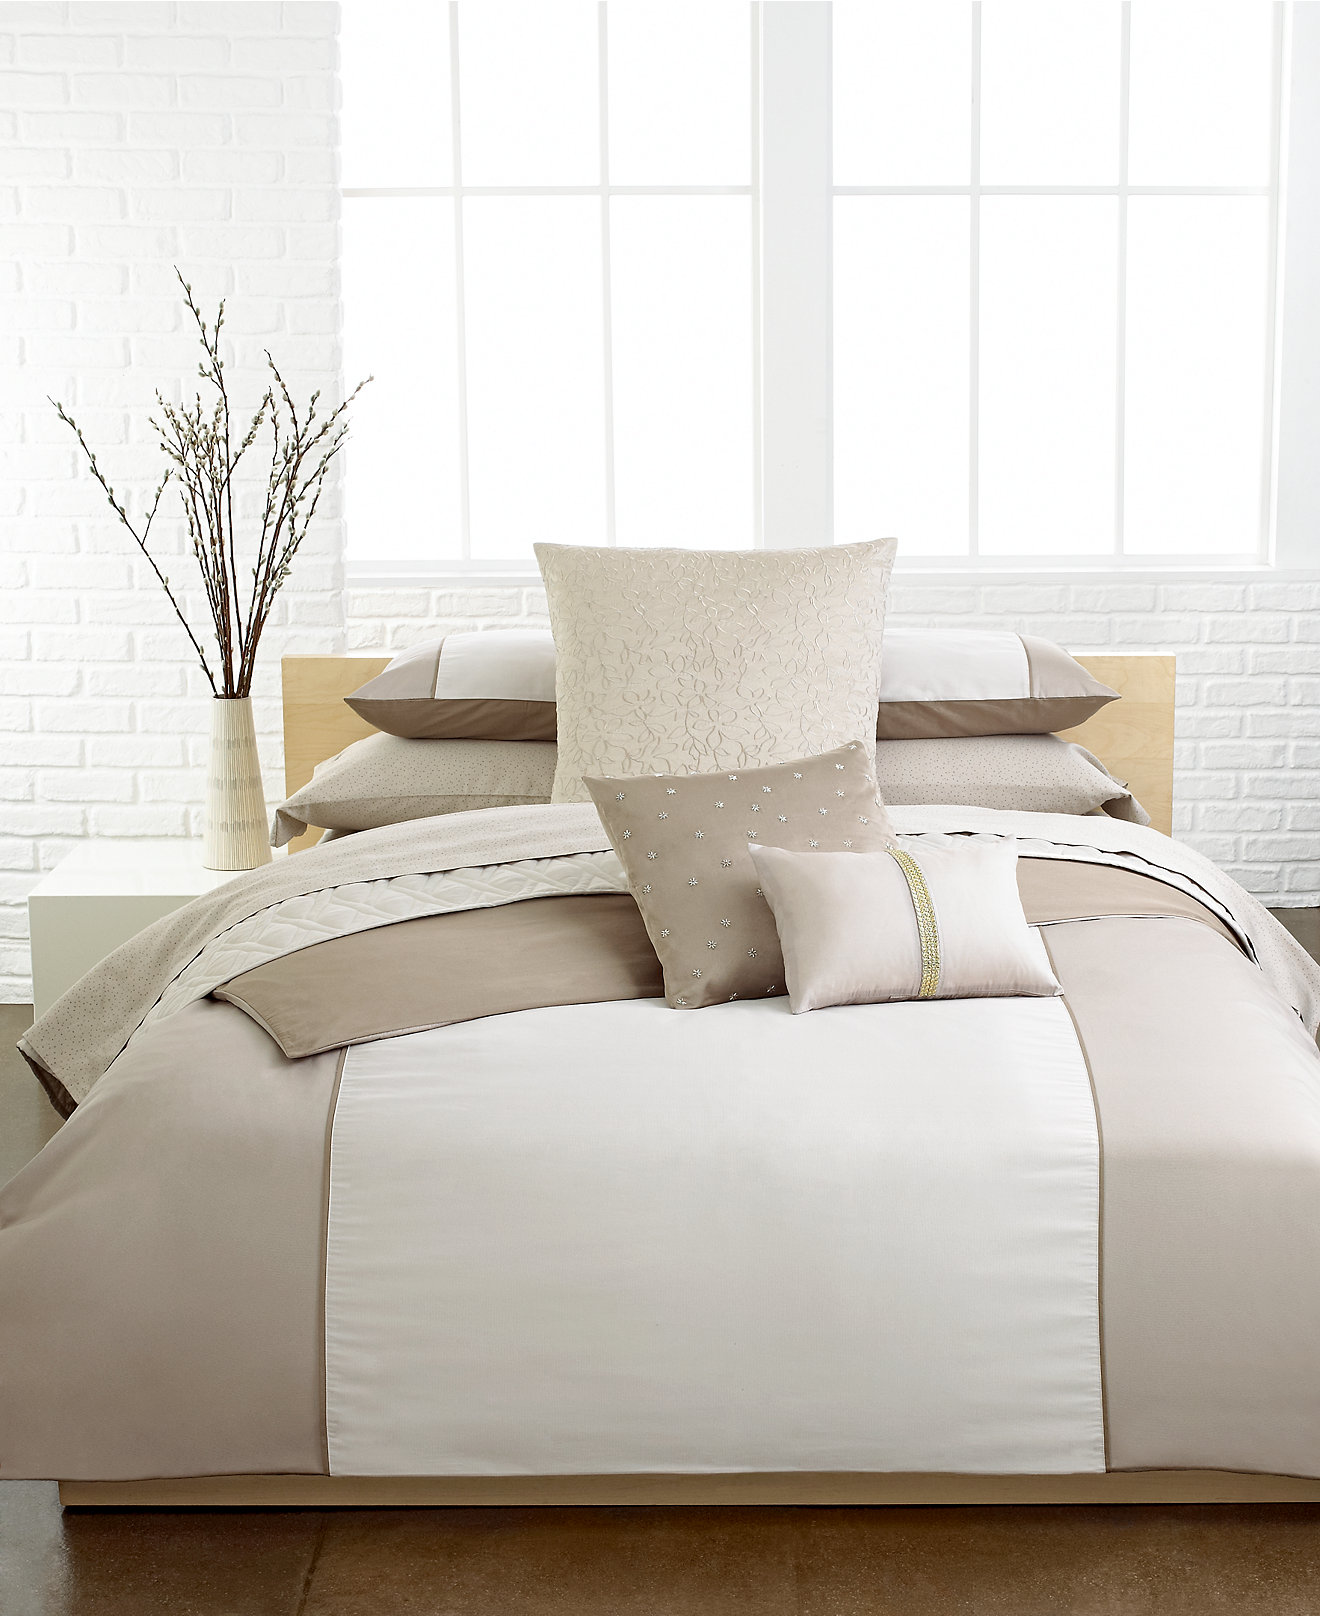 Calvin Klein Duvet Cover Sweetgalas - Brown pattern bedding double duvet set calvin klein bamboo bedding